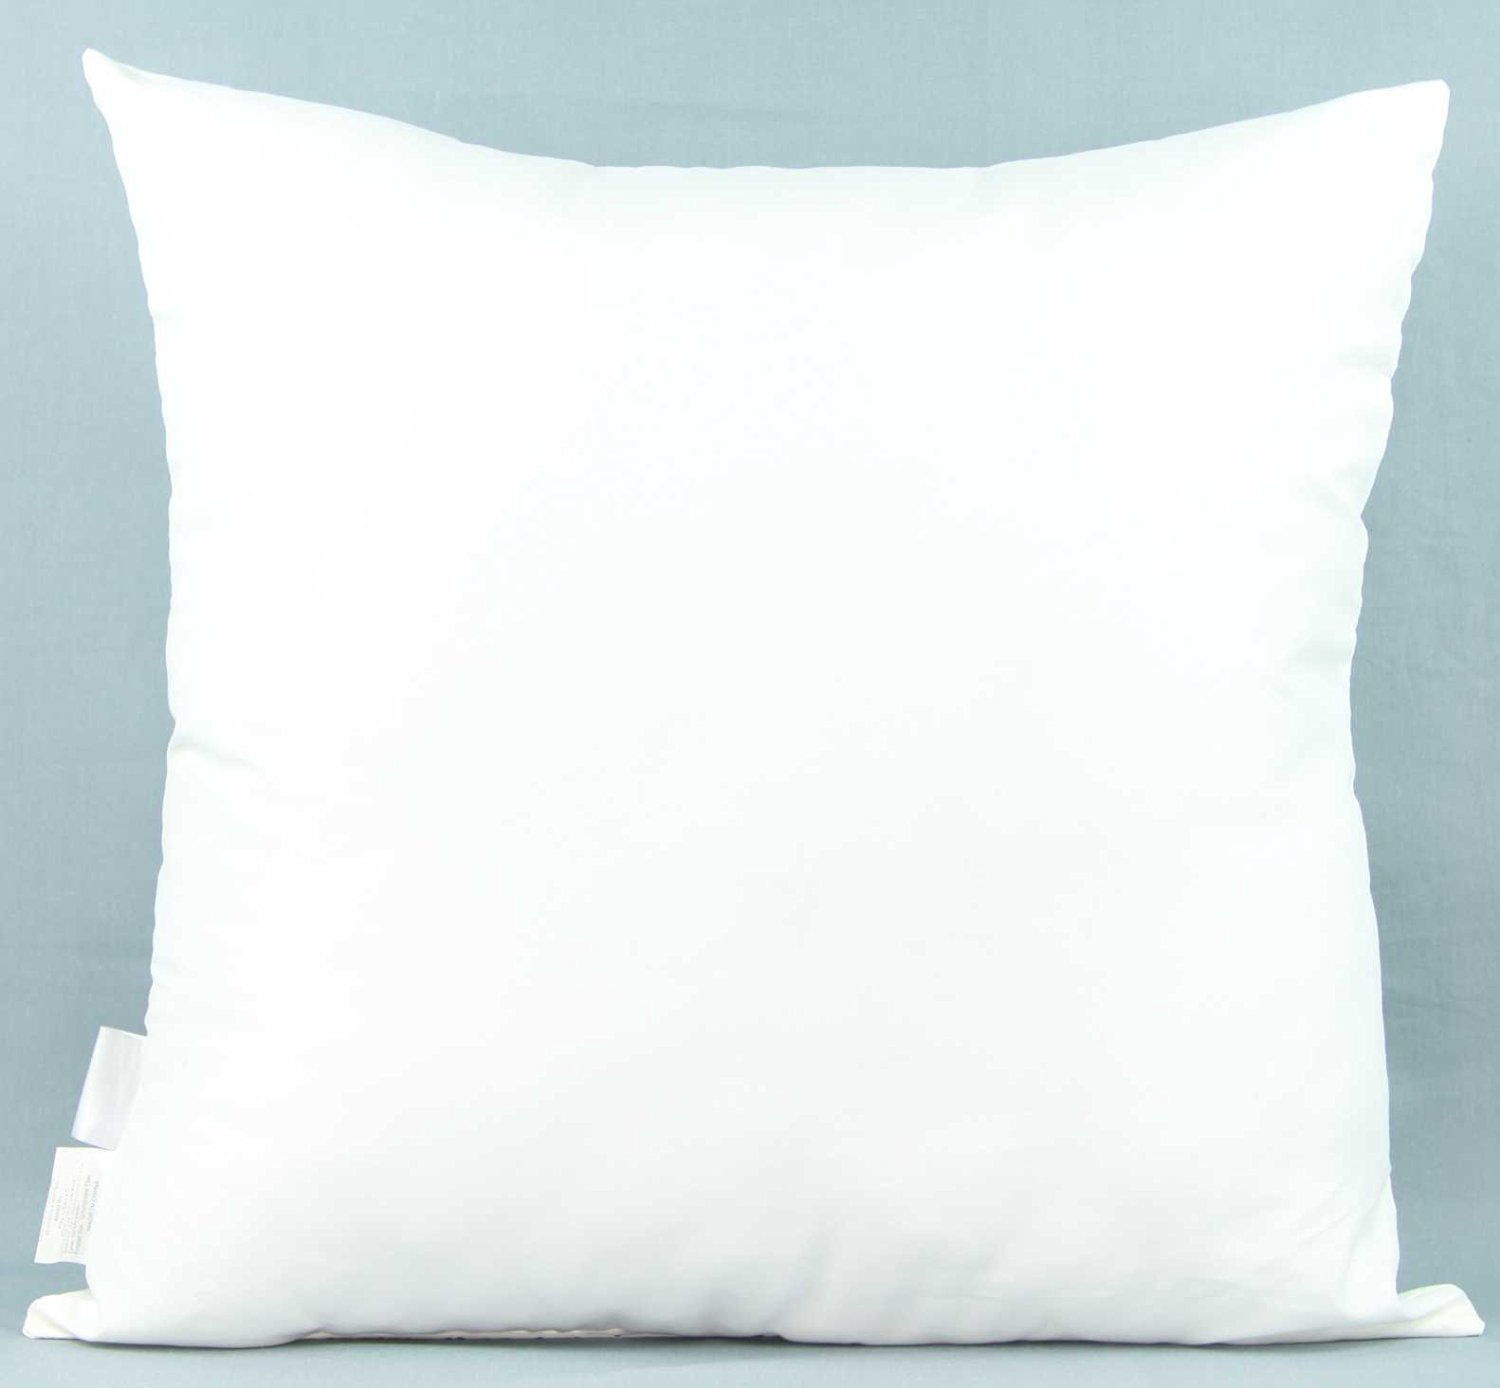 x foamily products default insert title pillow